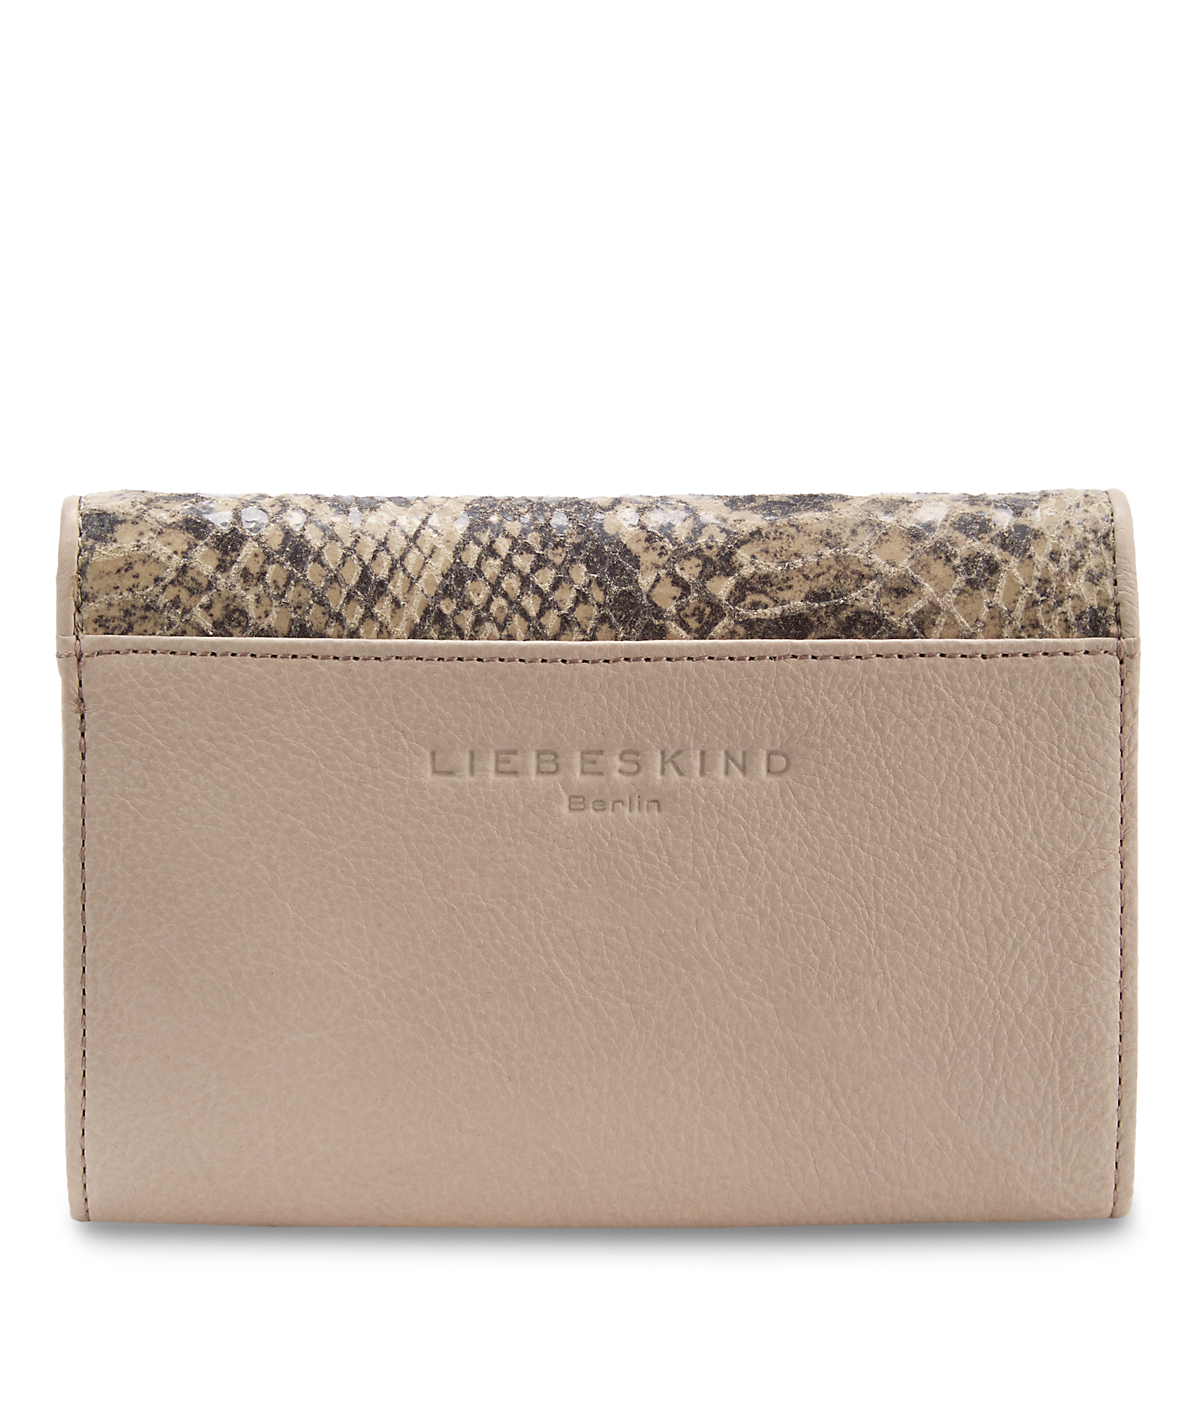 Piper purse from liebeskind